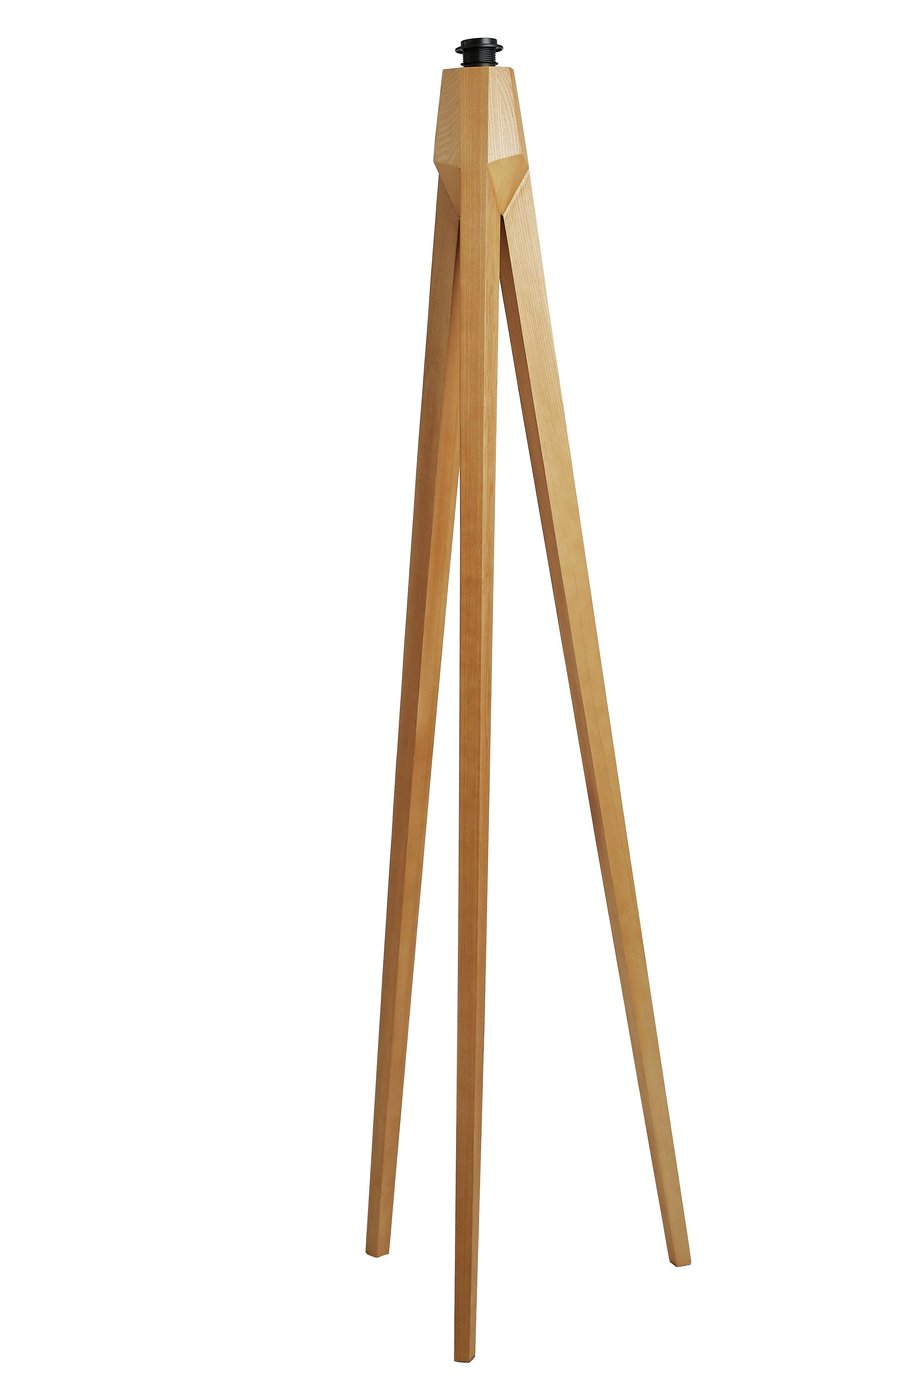 Image of Habitat - Tripod Ash Wooden - Floor Lamp